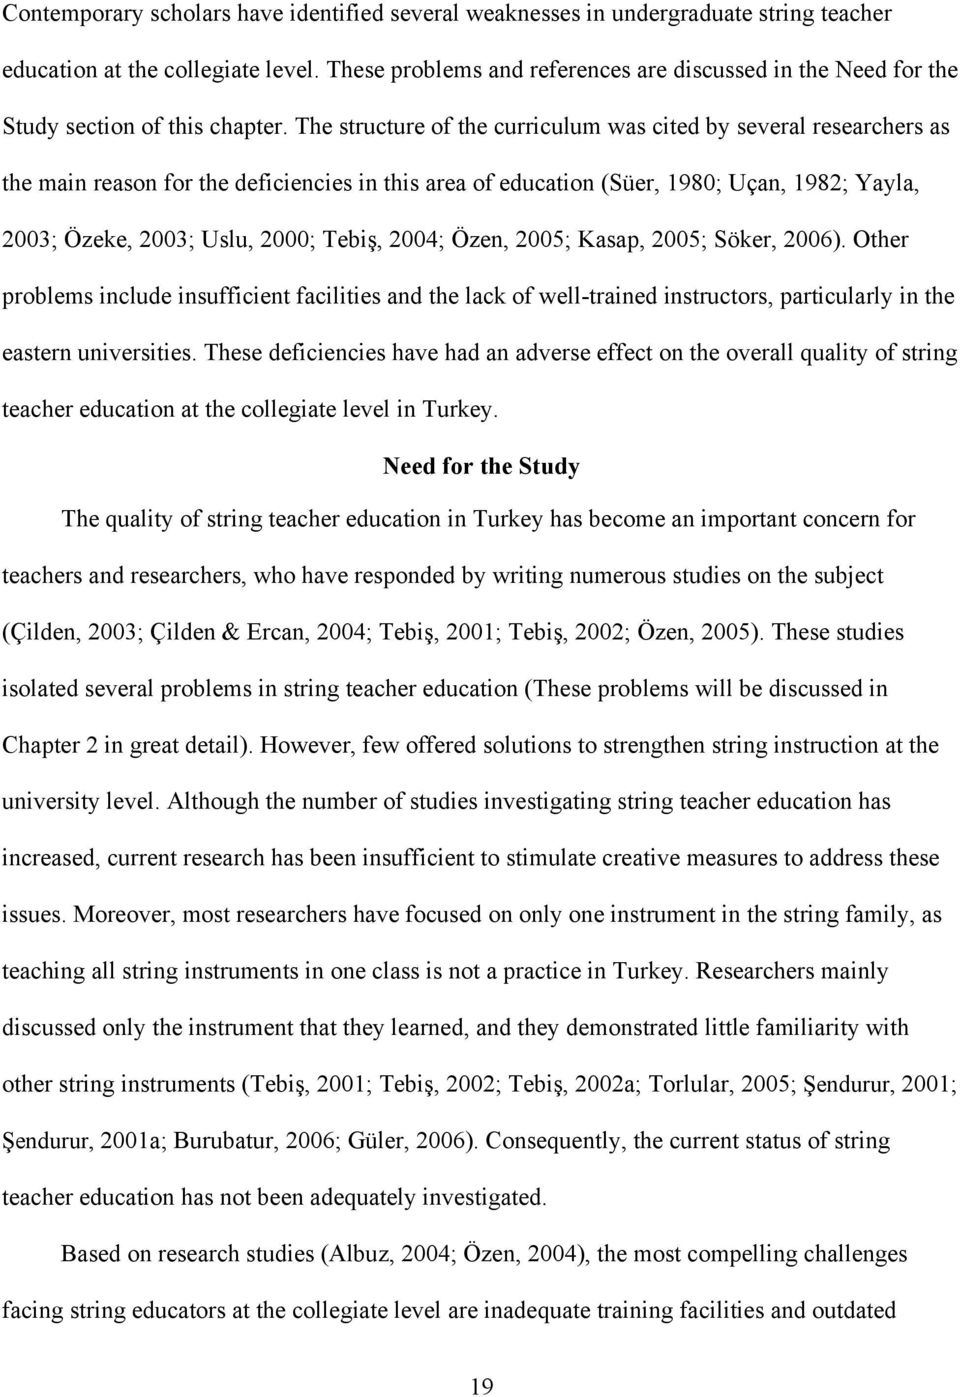 The structure of the curriculum was cited by several researchers as the main reason for the deficiencies in this area of education (Süer, 1980; Uçan, 1982; Yayla, 2003; Özeke, 2003; Uslu, 2000;